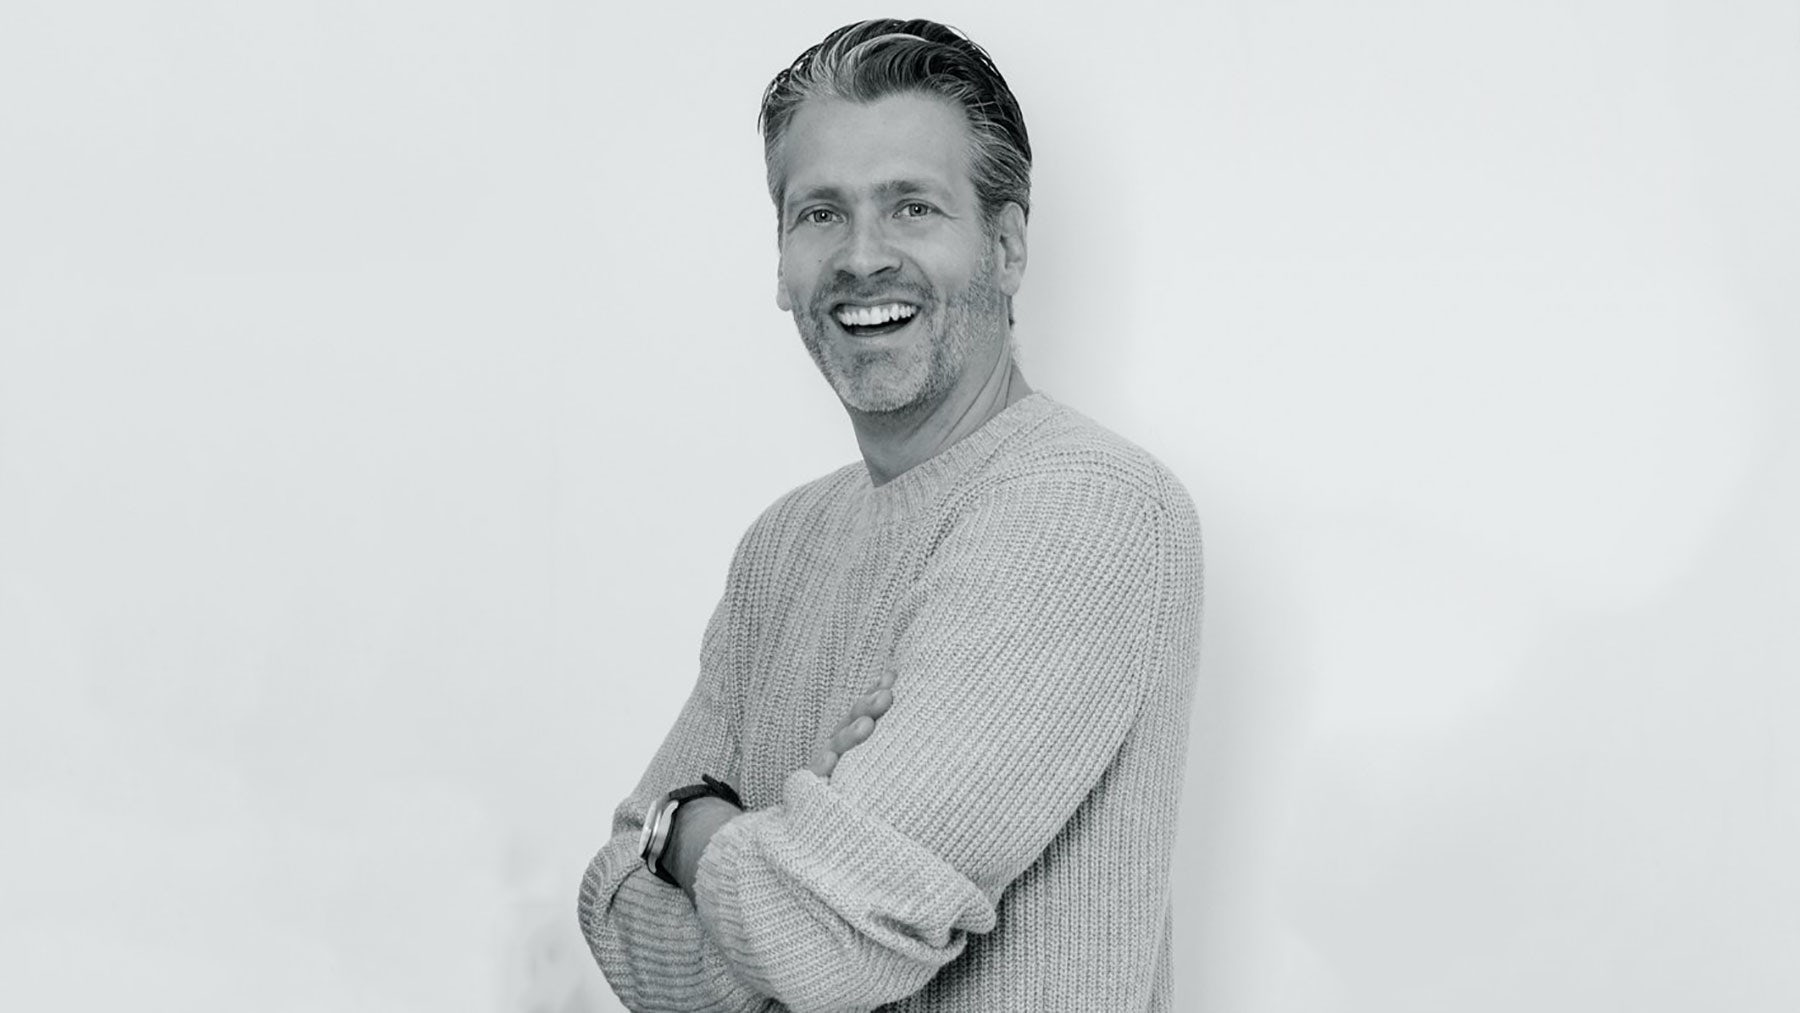 Power Moves | Scotch & Soda Names CMO, Tapestry Appoints Kate Spade CEO